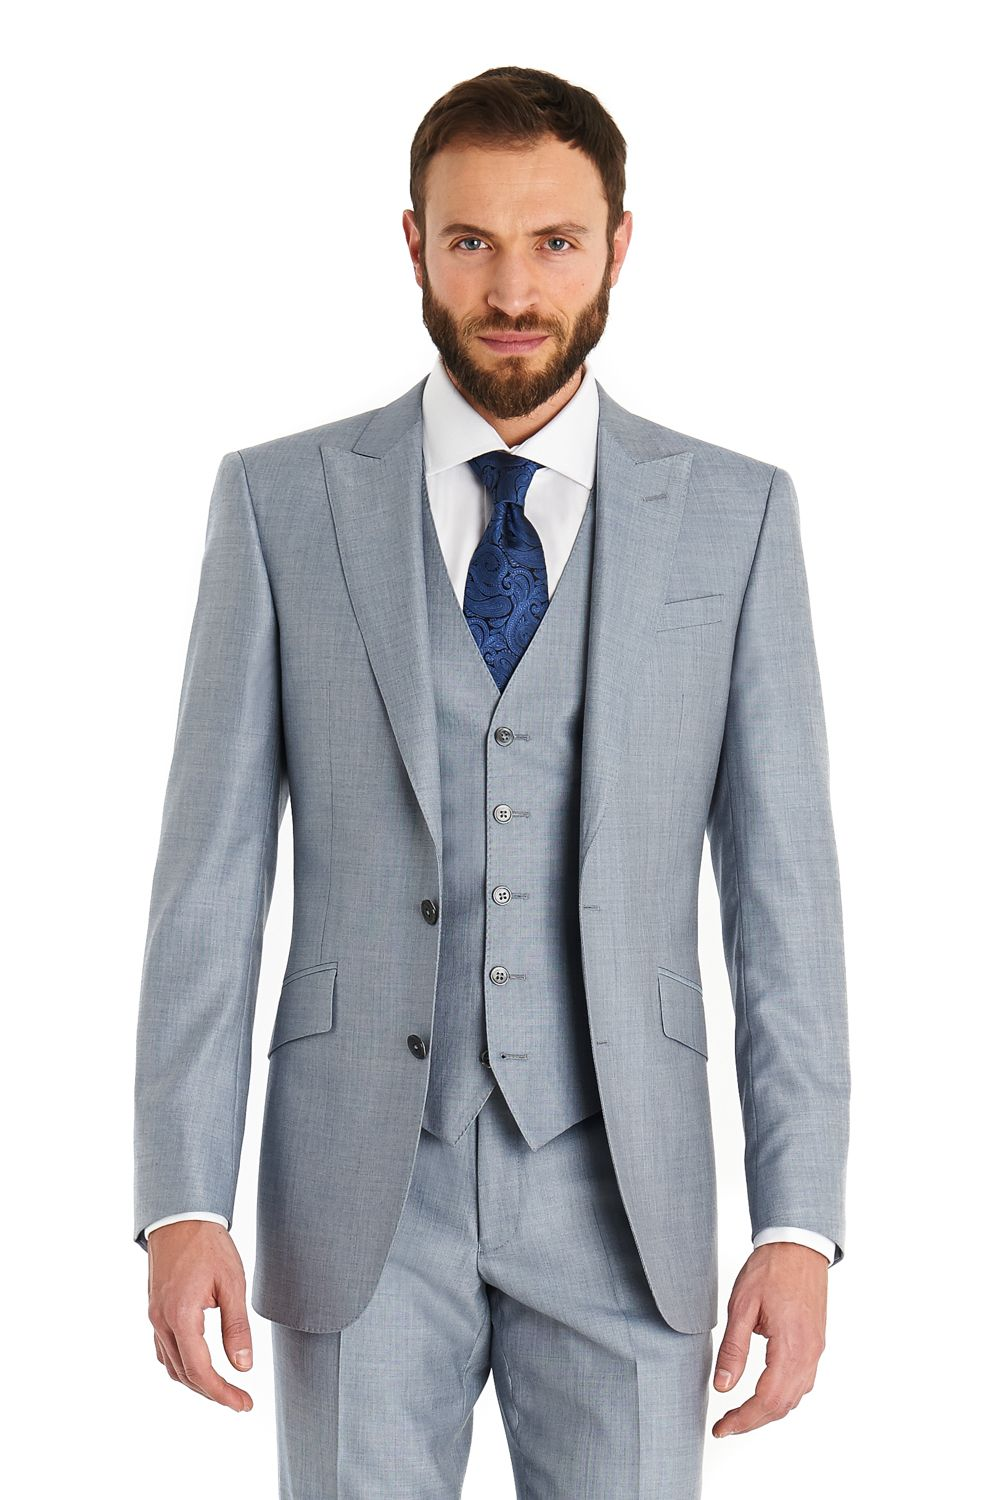 What Is a Sharkskin Suit | ... Home » Suits » Moss 1851 Regular Fit ...